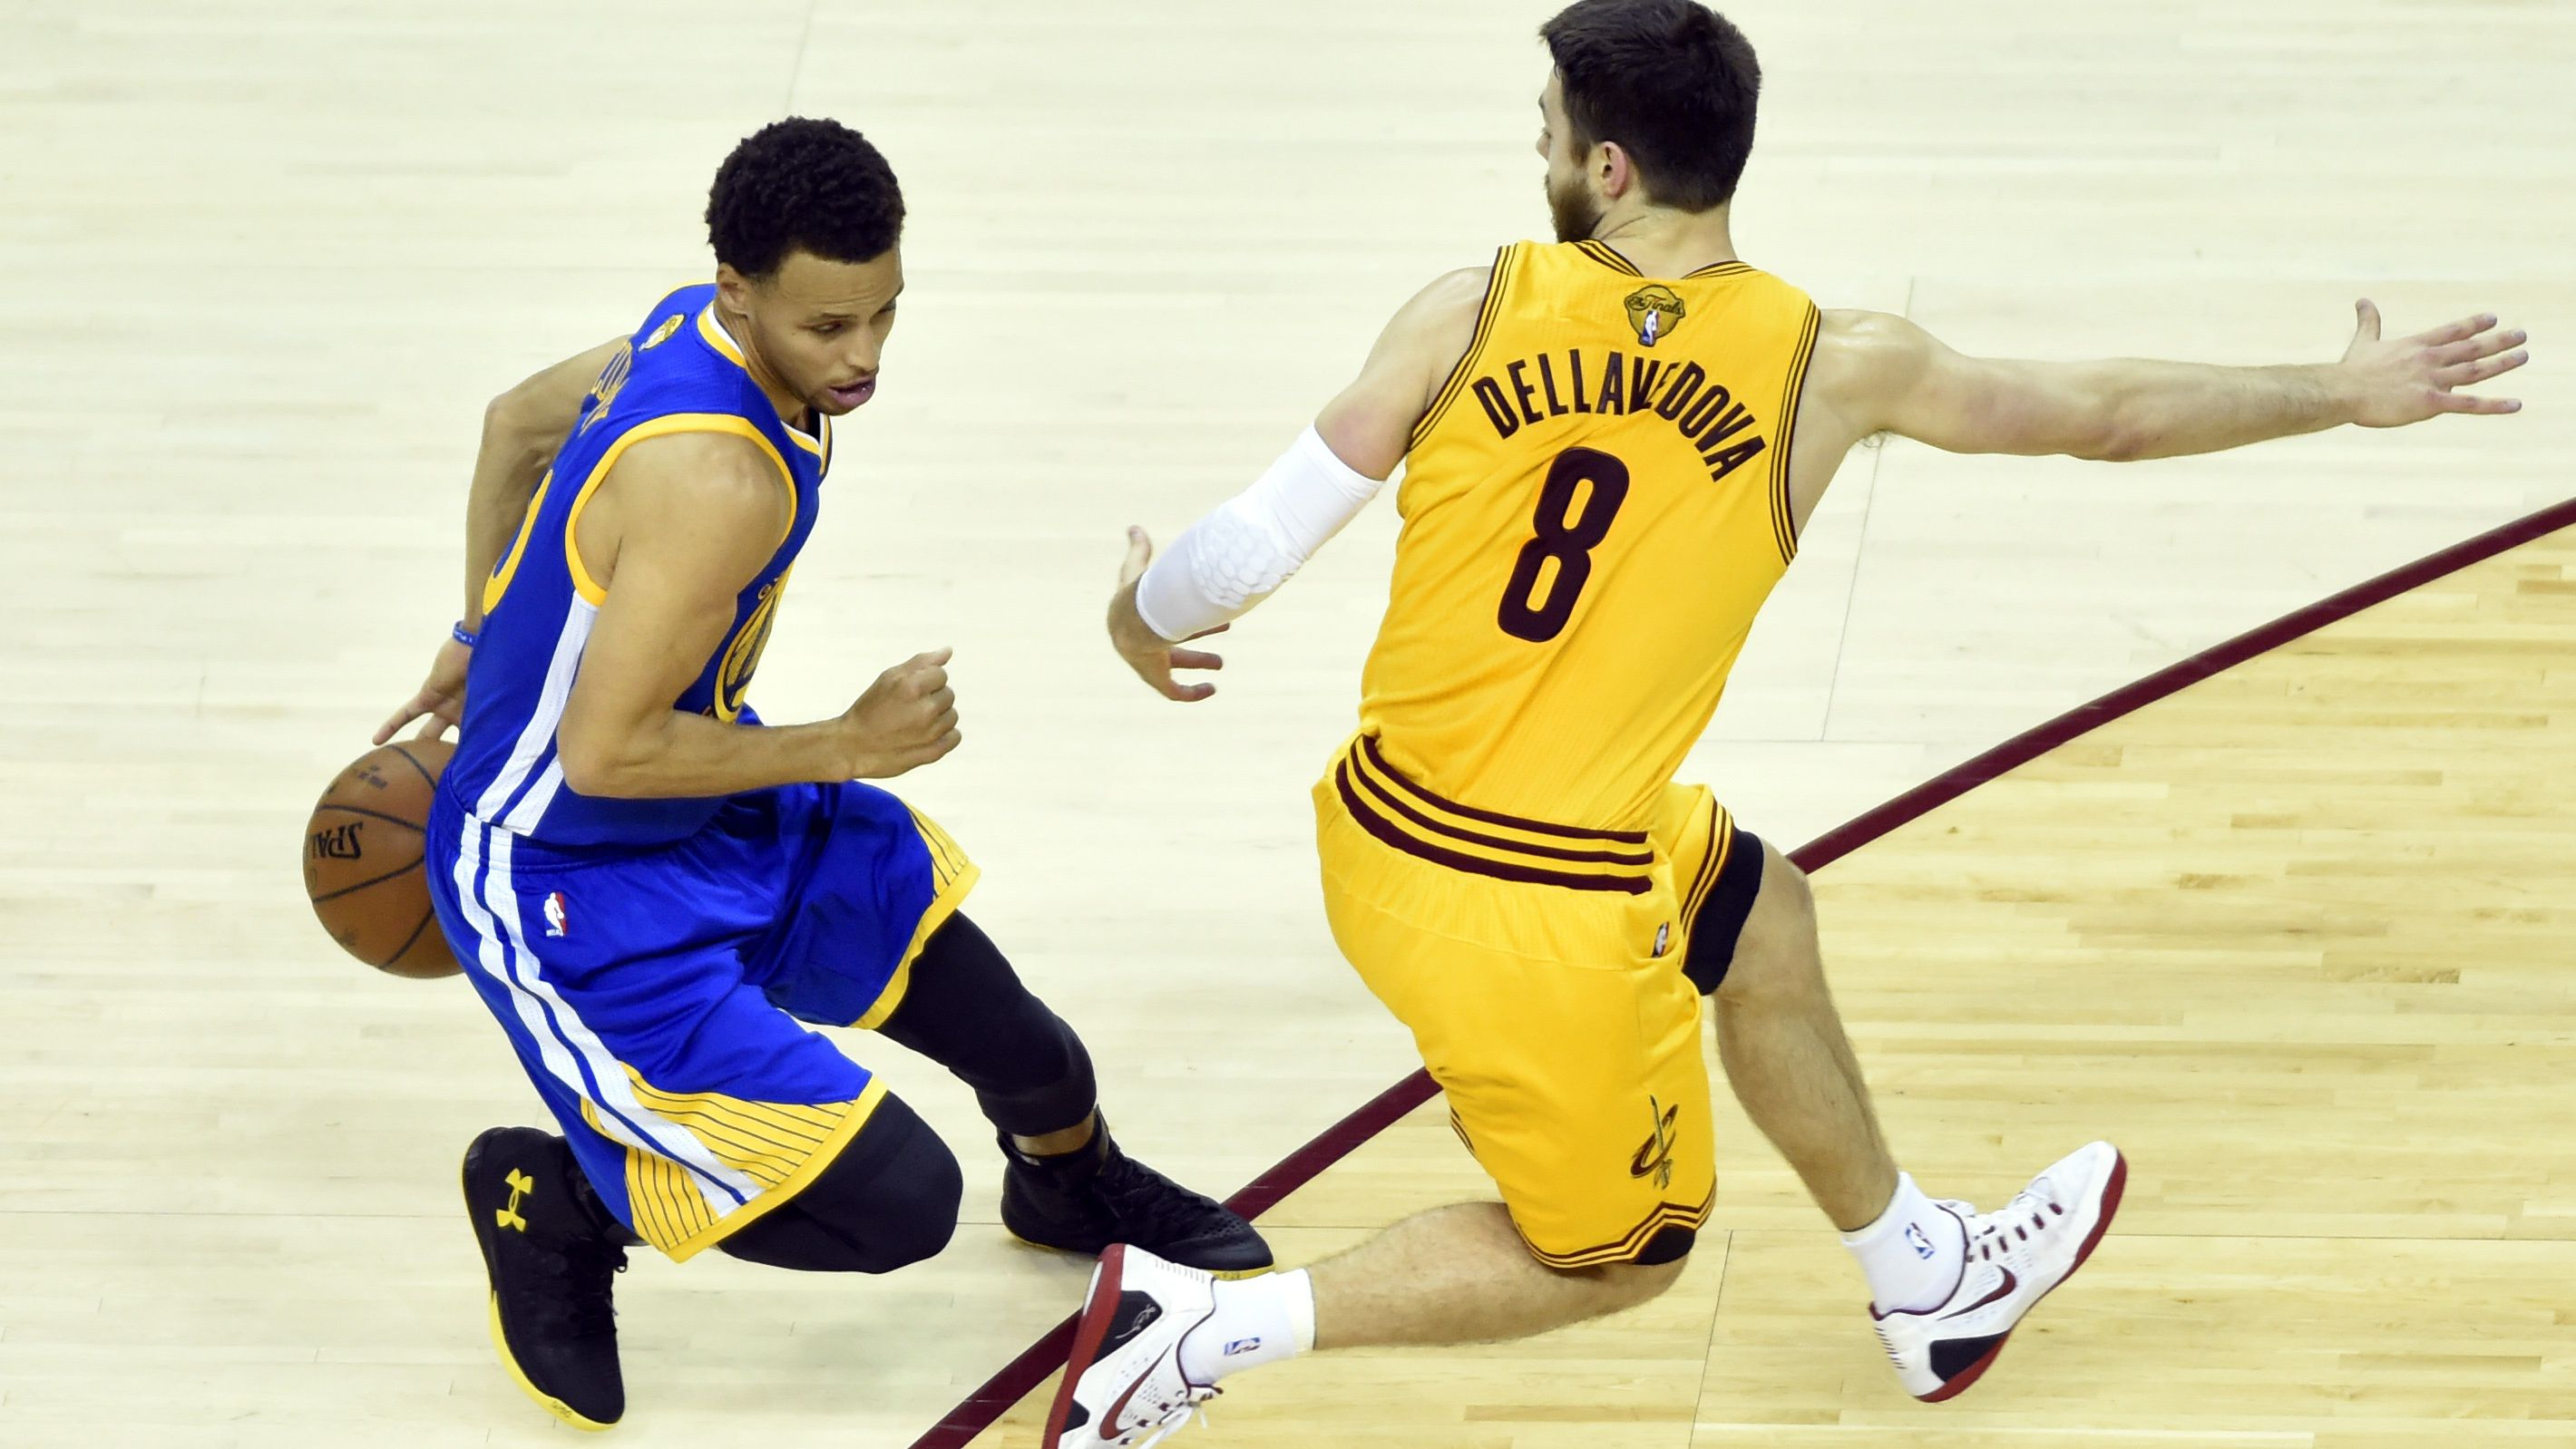 Jun 11, 2015; Cleveland, OH, USA; Golden State Warriors guard Stephen Curry (30) controls the ball against Cleveland Cavaliers guard Matthew Dellavedova (8) during the first quarter of game four of the NBA Finals at Quicken Loans Arena.